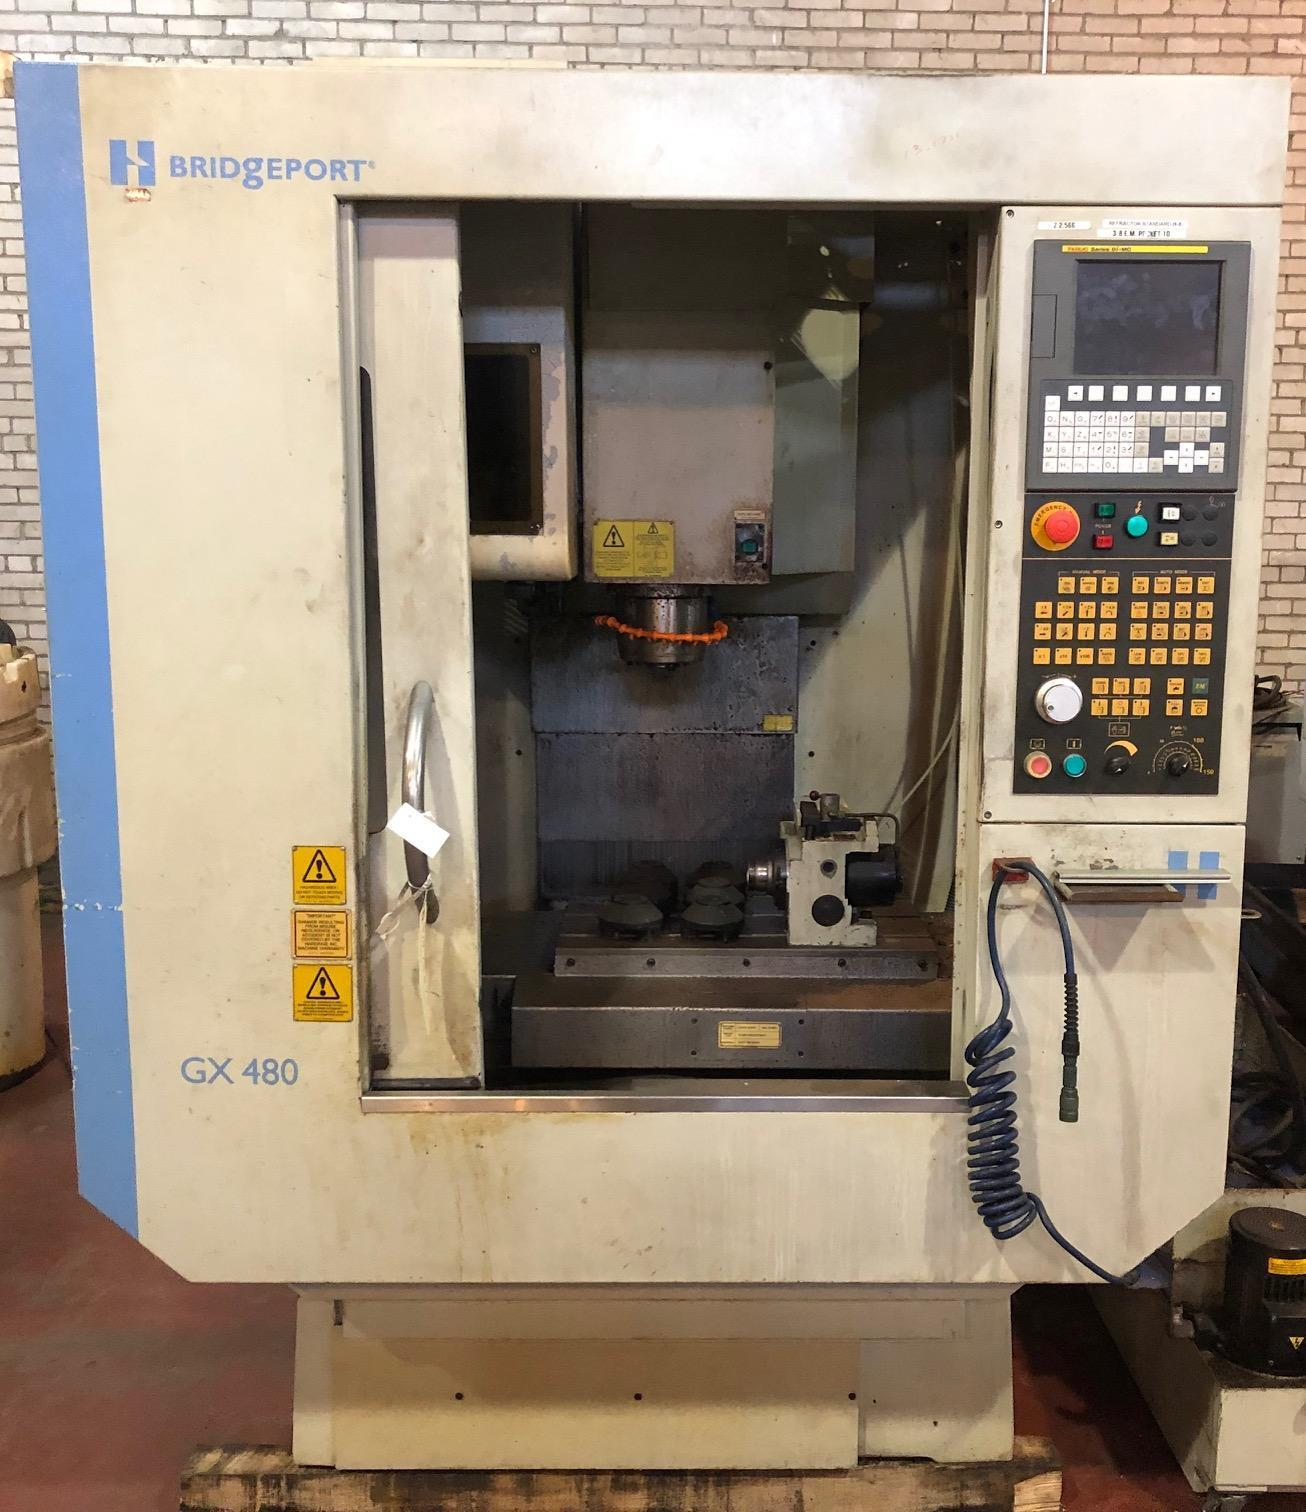 Hardinge GX480 CNC Vertical Machining Center w/ 4th Axis